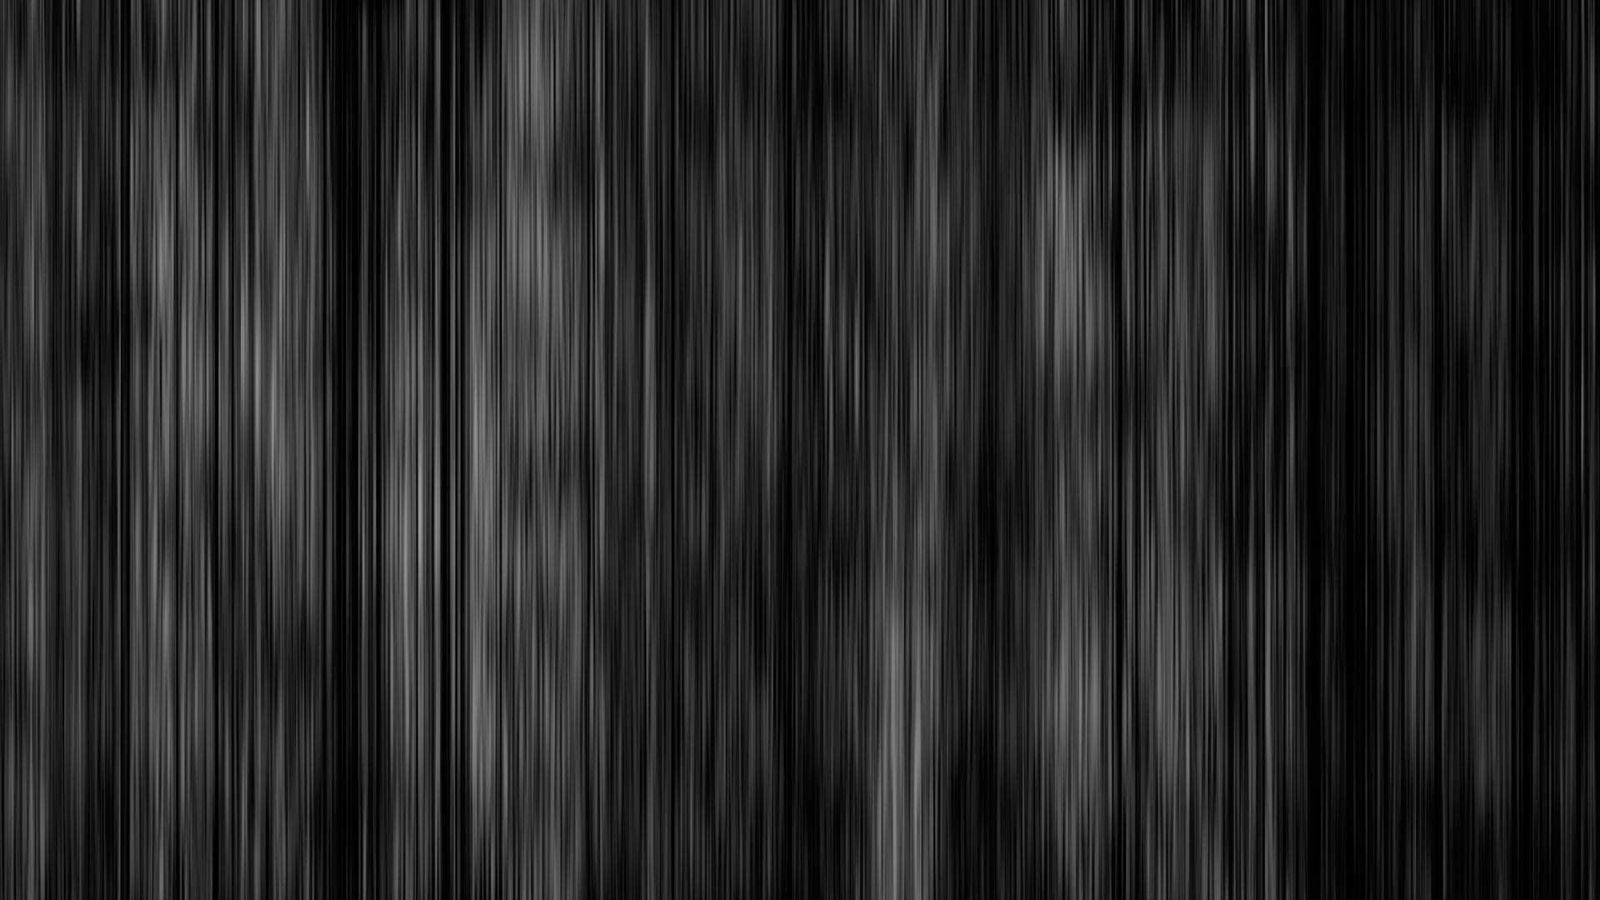 Hd Gray Background Gradient Bright Light Abstract Wallpaper 1300